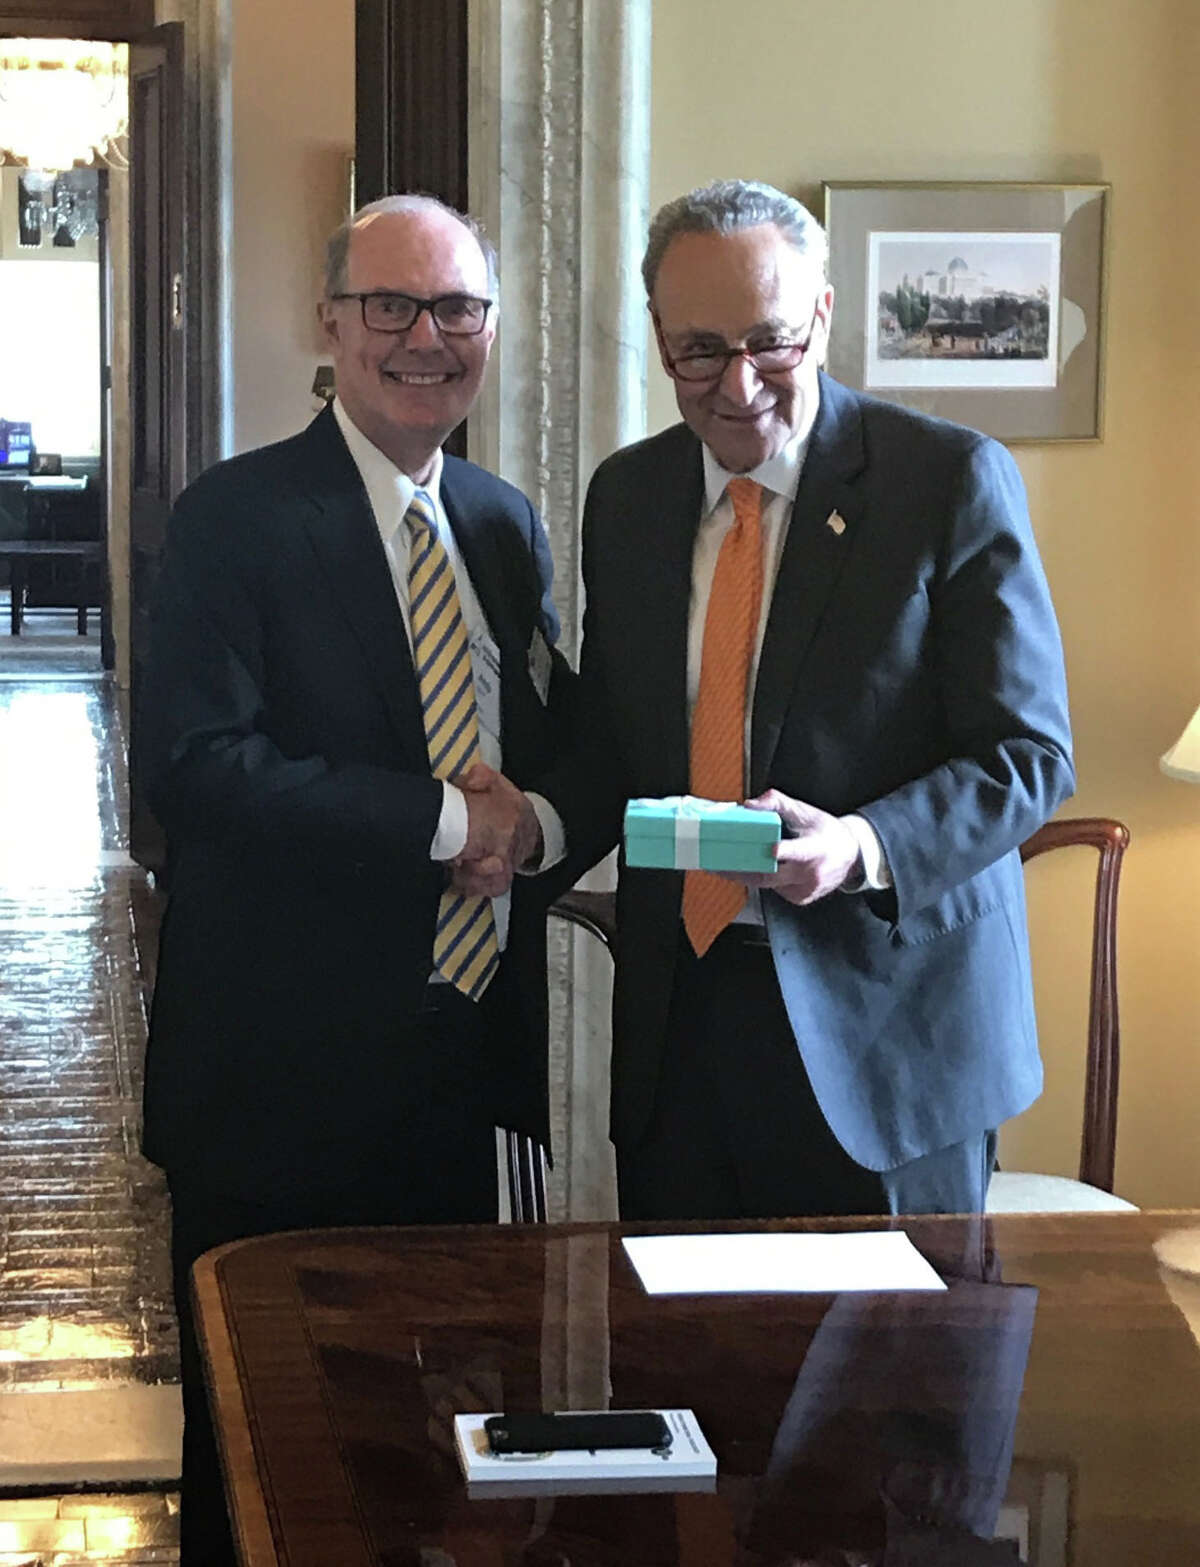 Plug Power CEO Andy Marsh, left, with U.S. Sen. Chuck Schumer of New York in Washington, D.C. Marsh presented Schumer with a special award for pushing through a tax credit on fuel cell purchases. ORG XMIT: MER2018061309315726